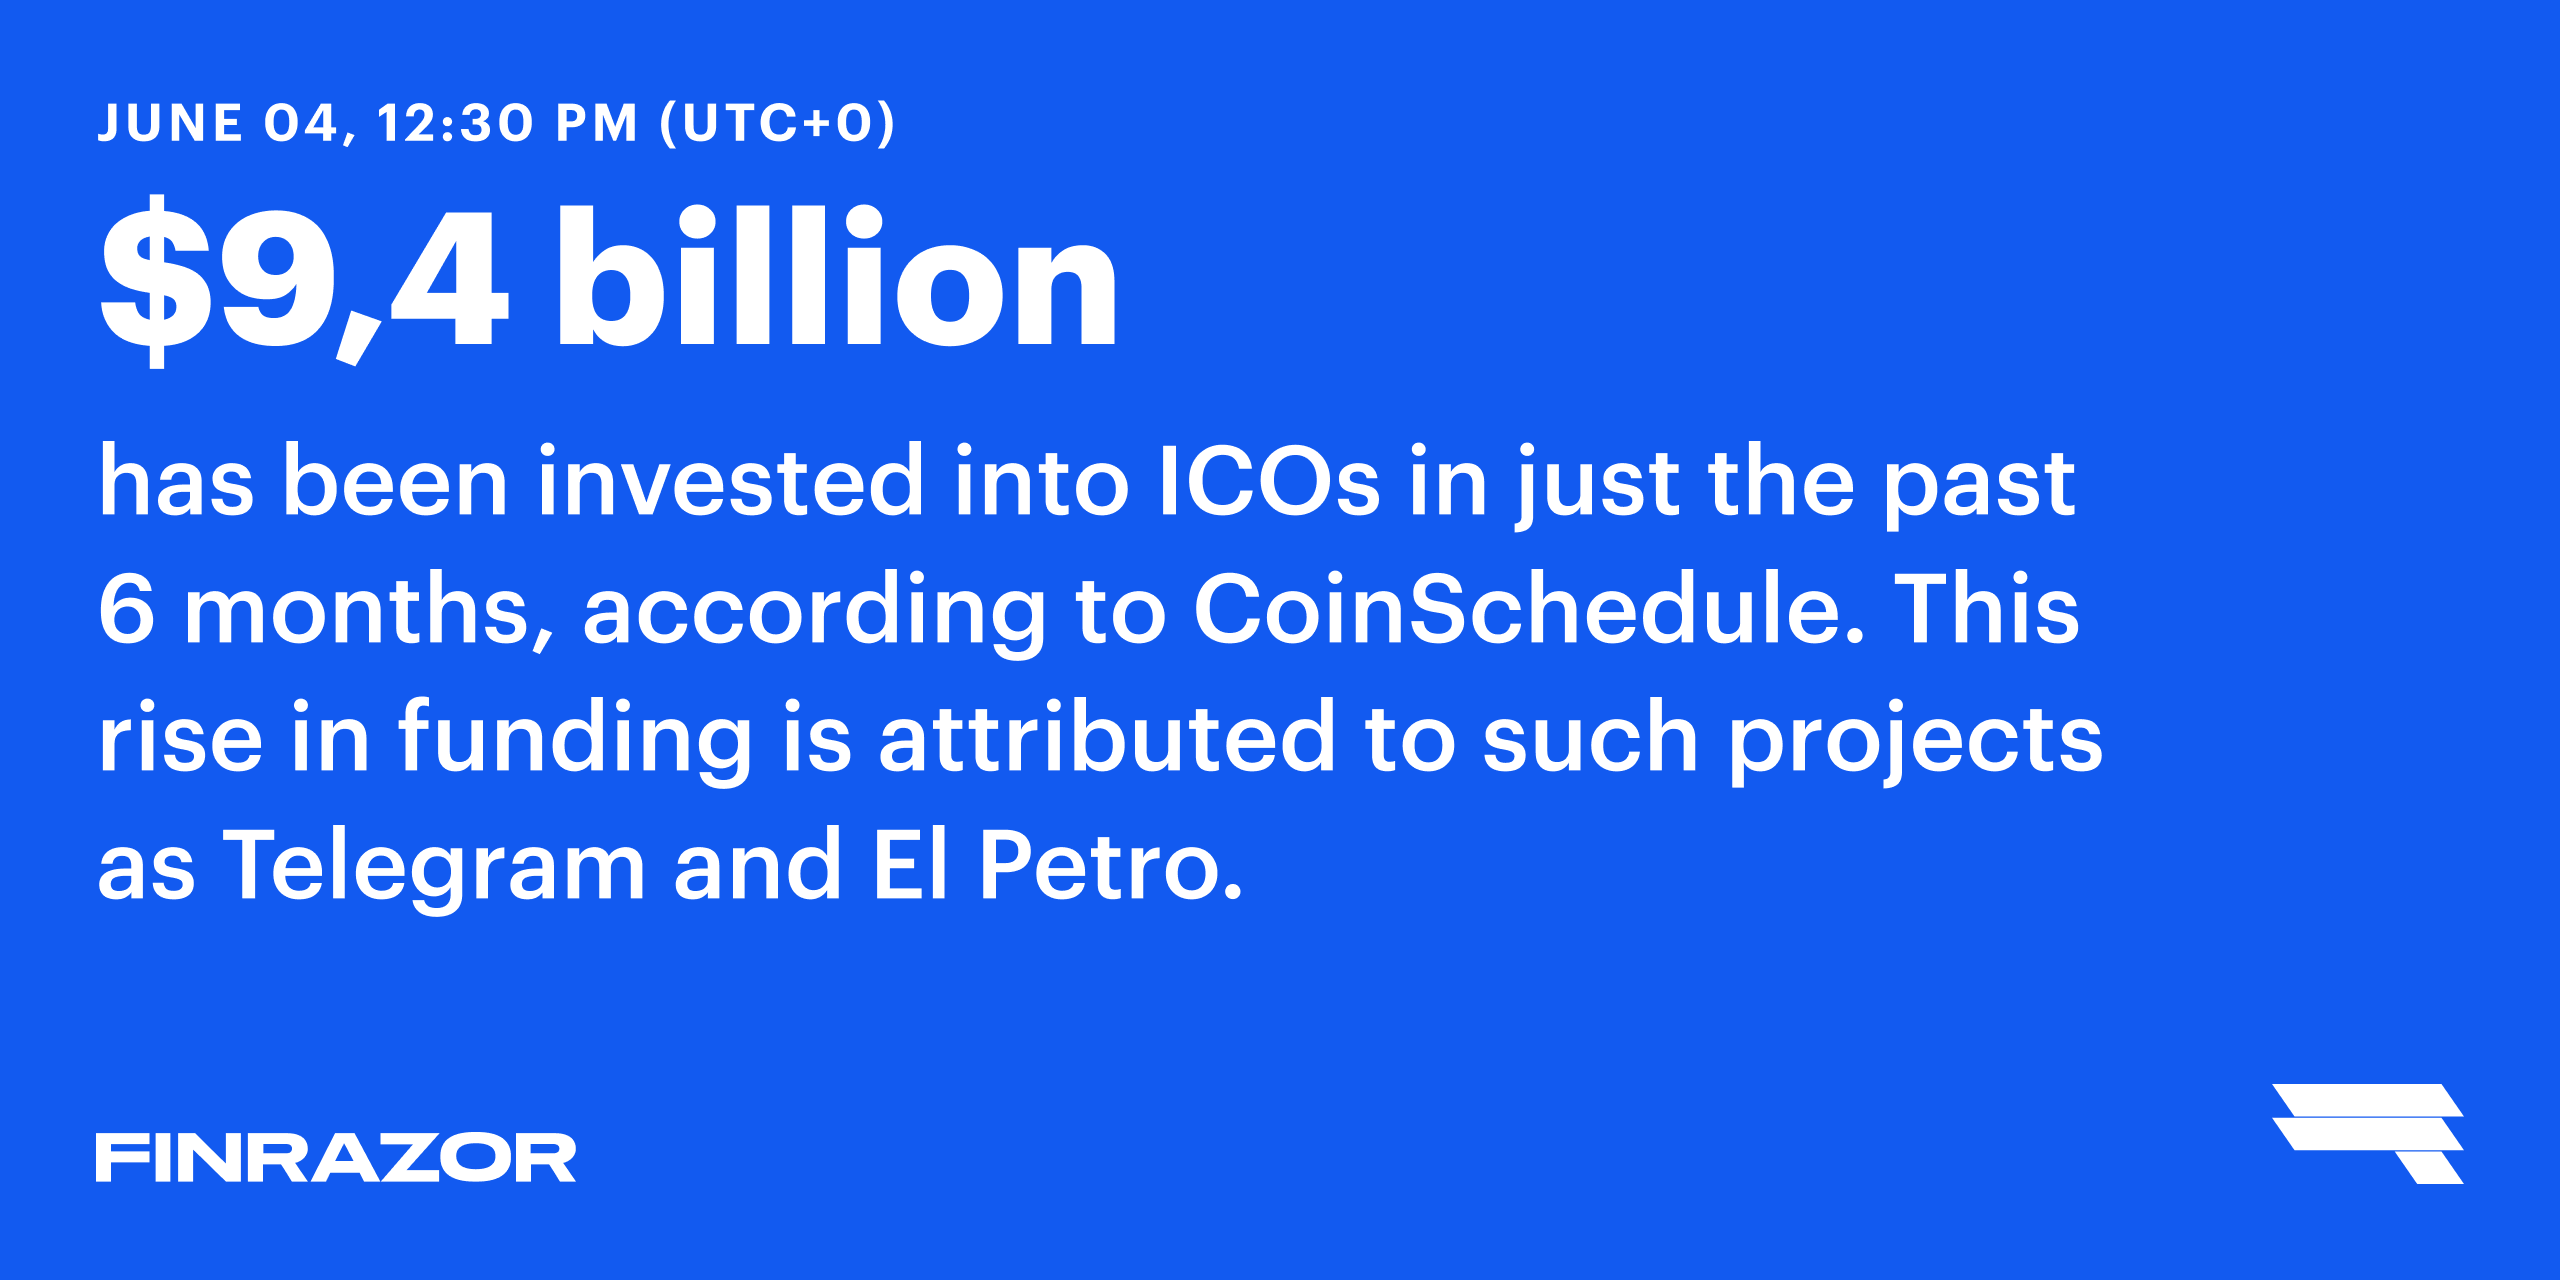 ICOs investment on the rise